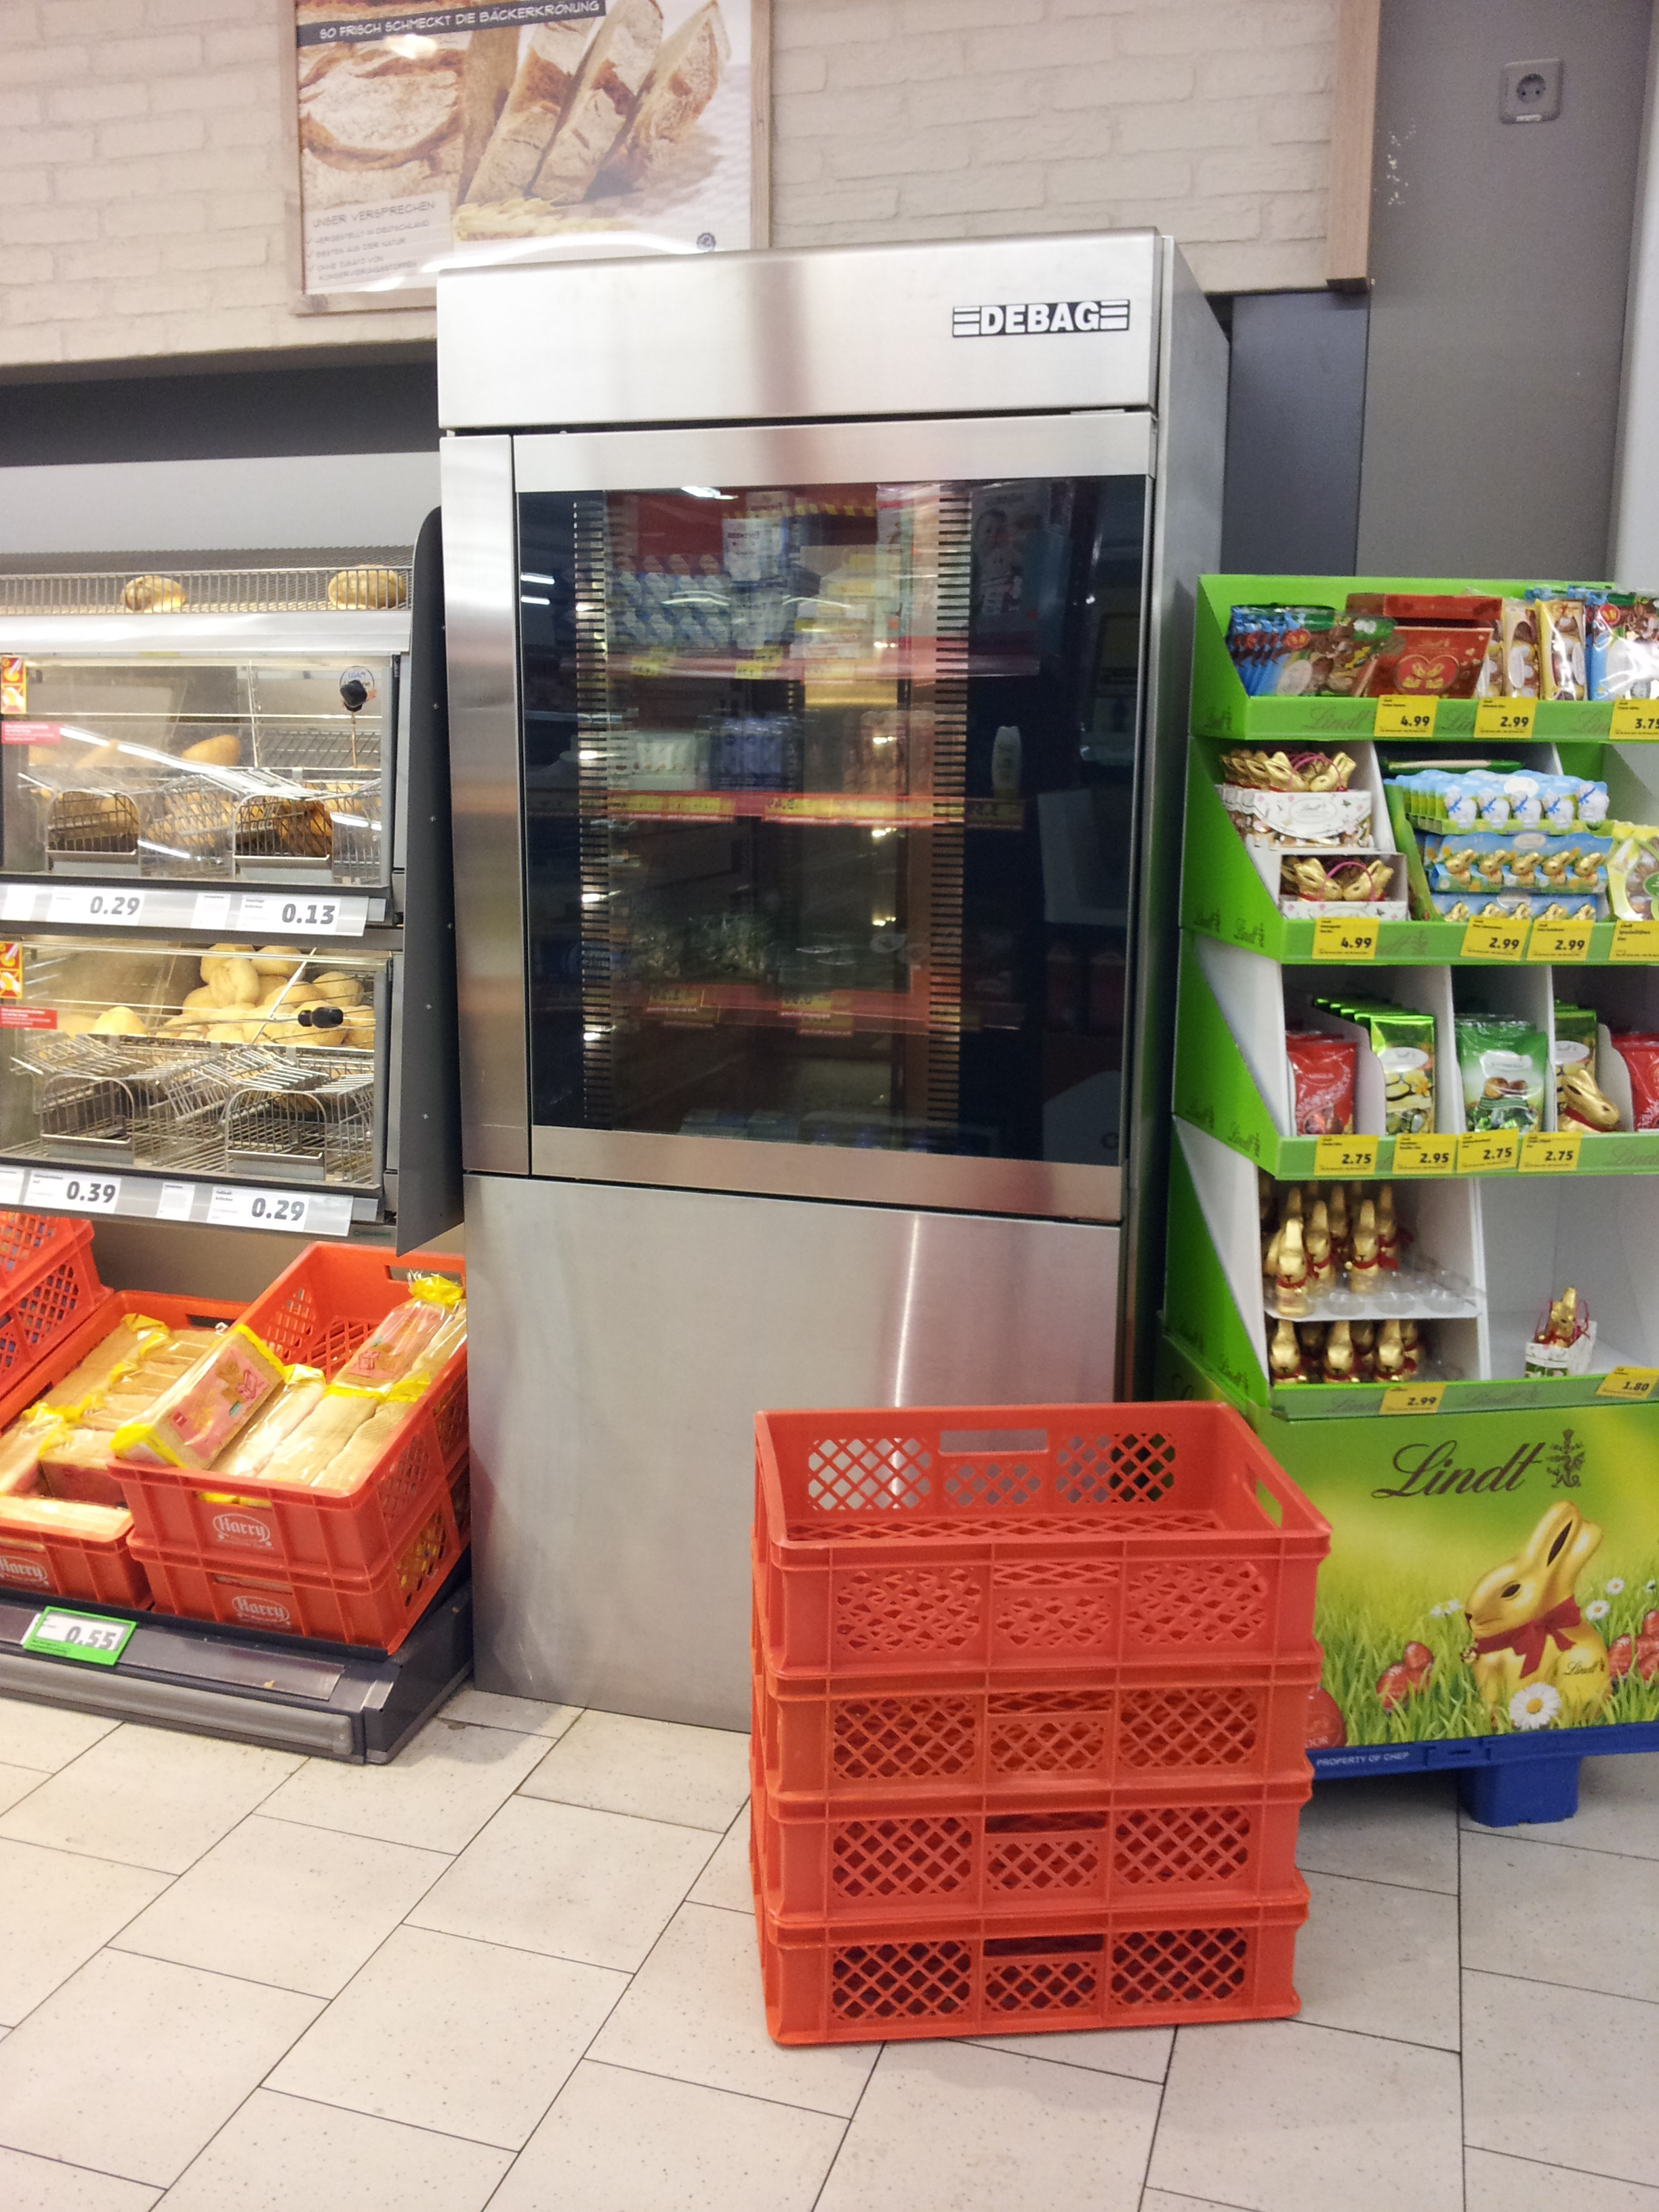 Backautomat in Supermarkt